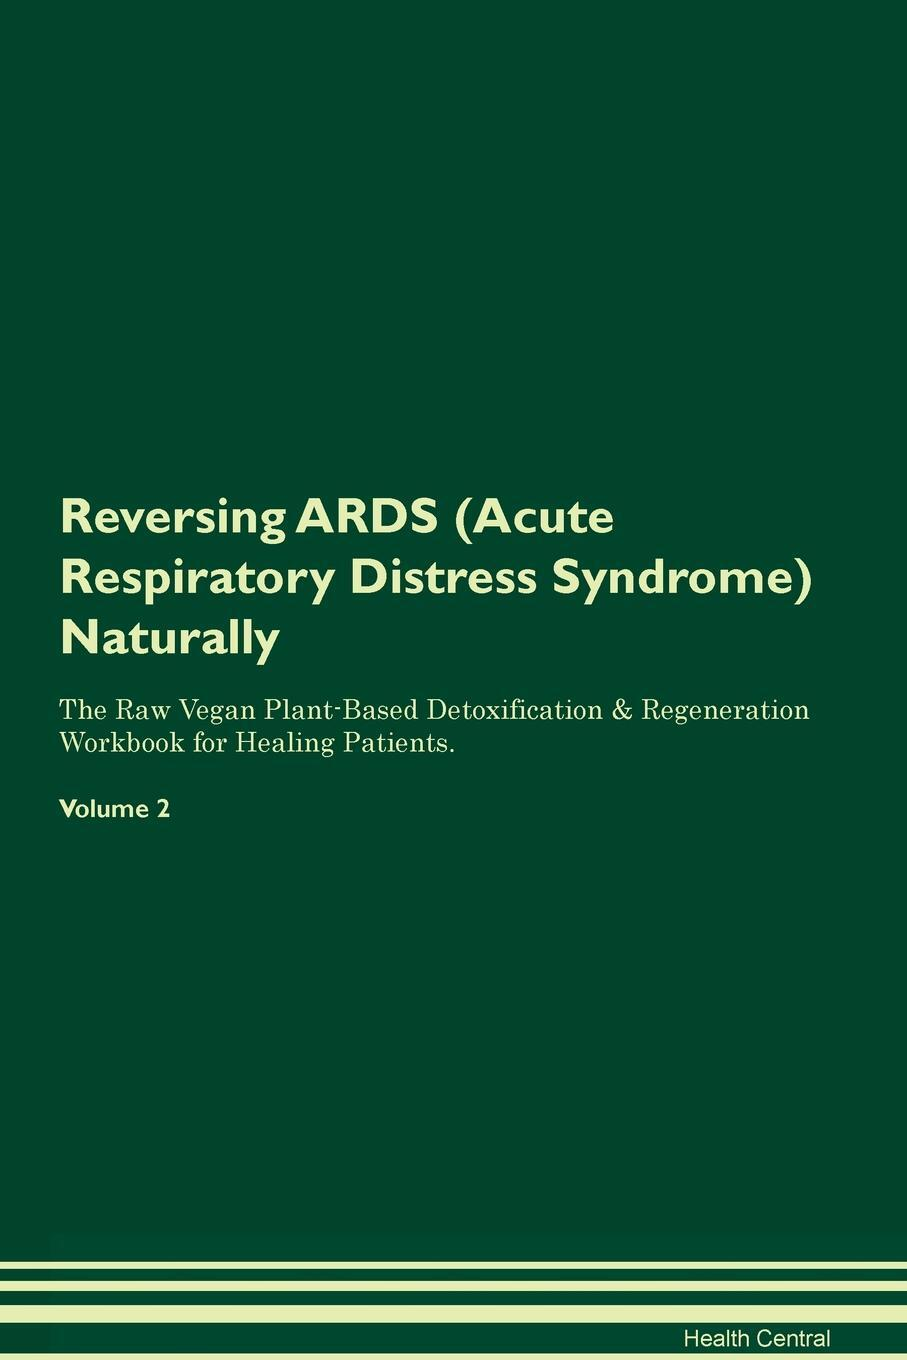 Reversing ARDS (Acute Respiratory Distress Syndrome) Naturally The Raw Vegan Plant-Based Detoxification & Regeneration Workbook for Healing Patients. Volume 2